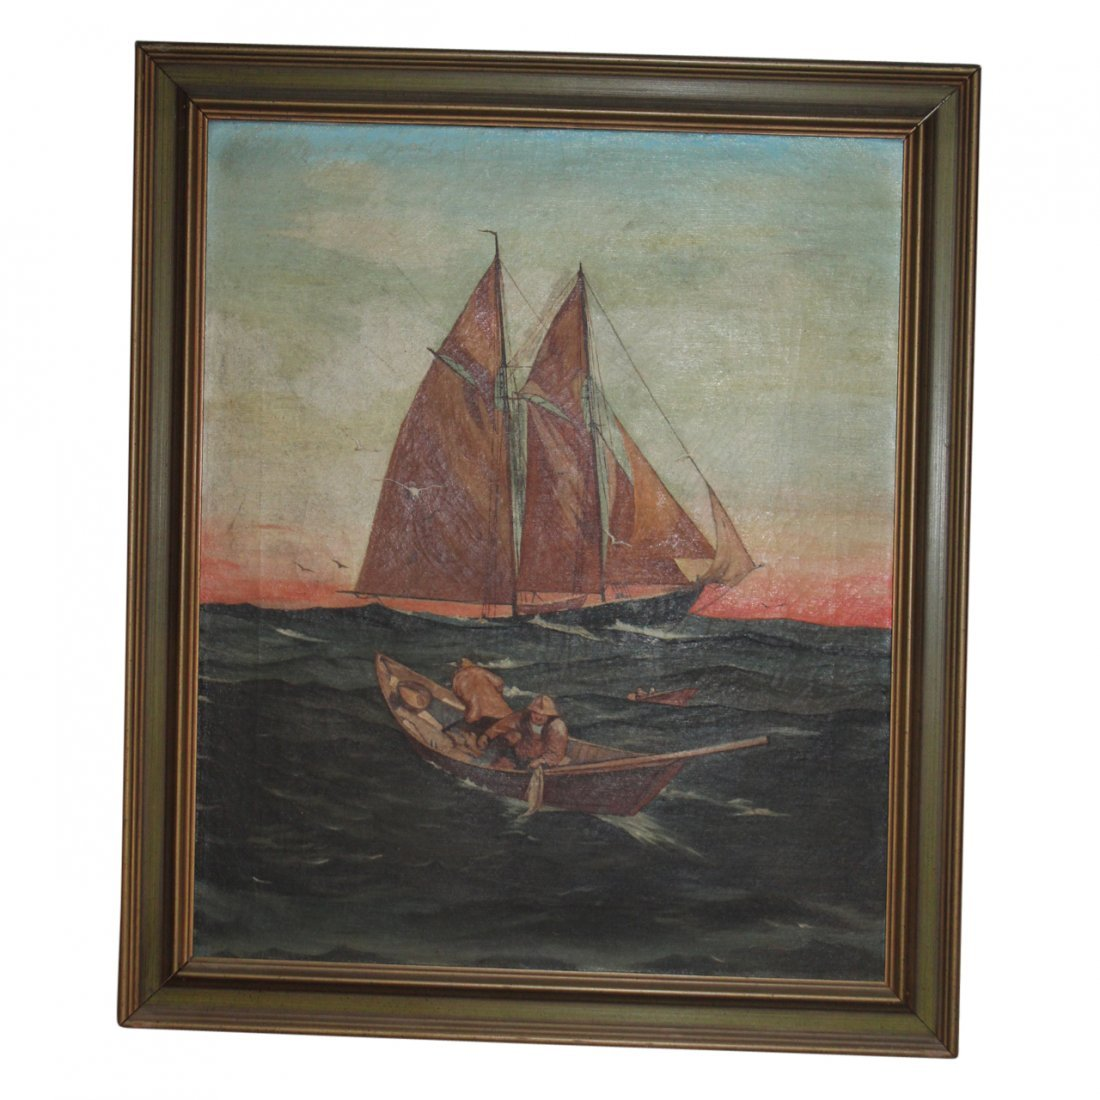 Oil Painting in the Manner of Gordon Grant